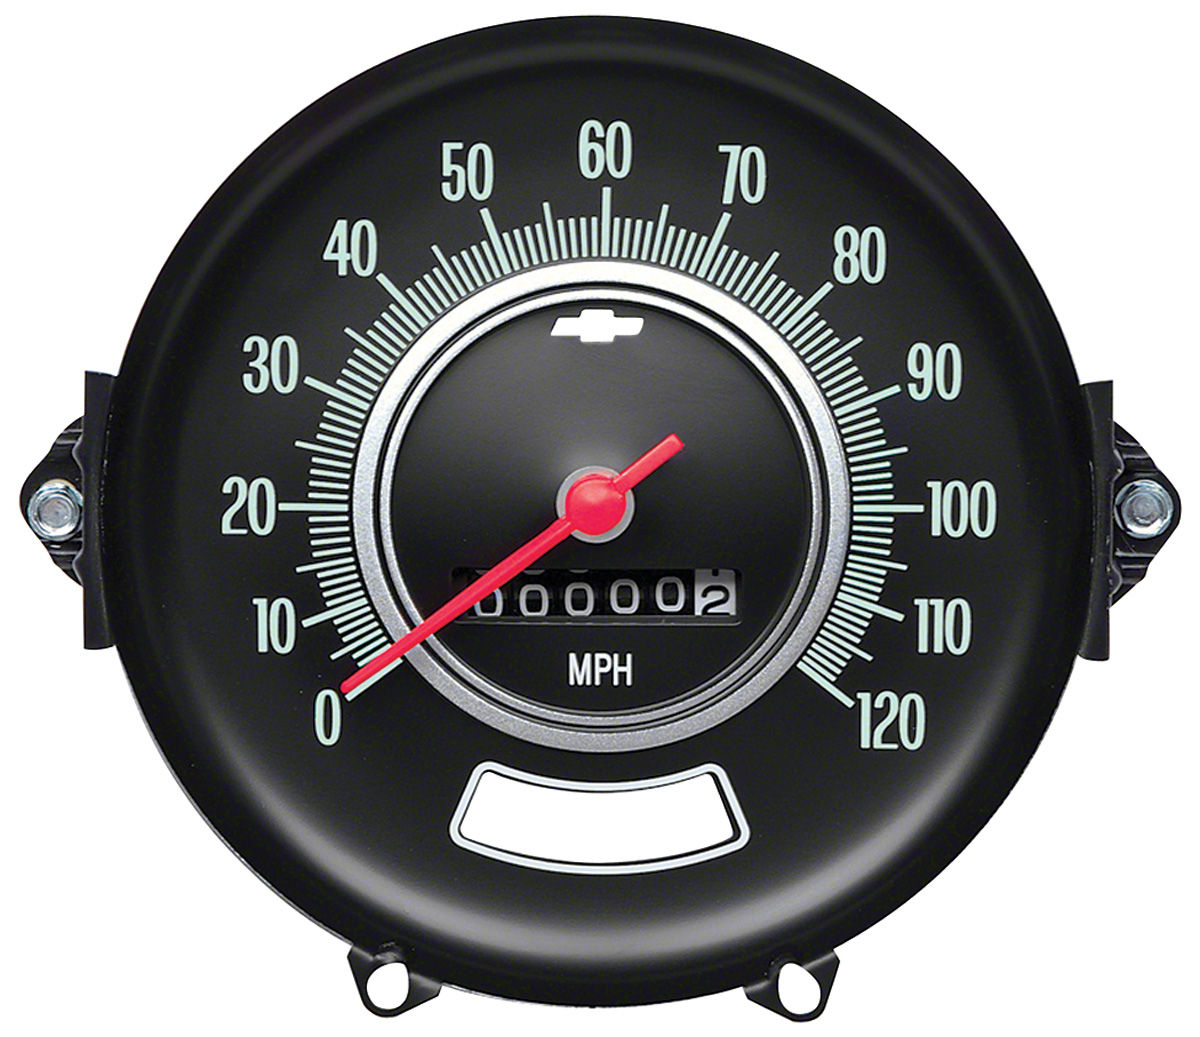 Chevelle Speedometer W O Speed Warning Fits 1969 Chevelle